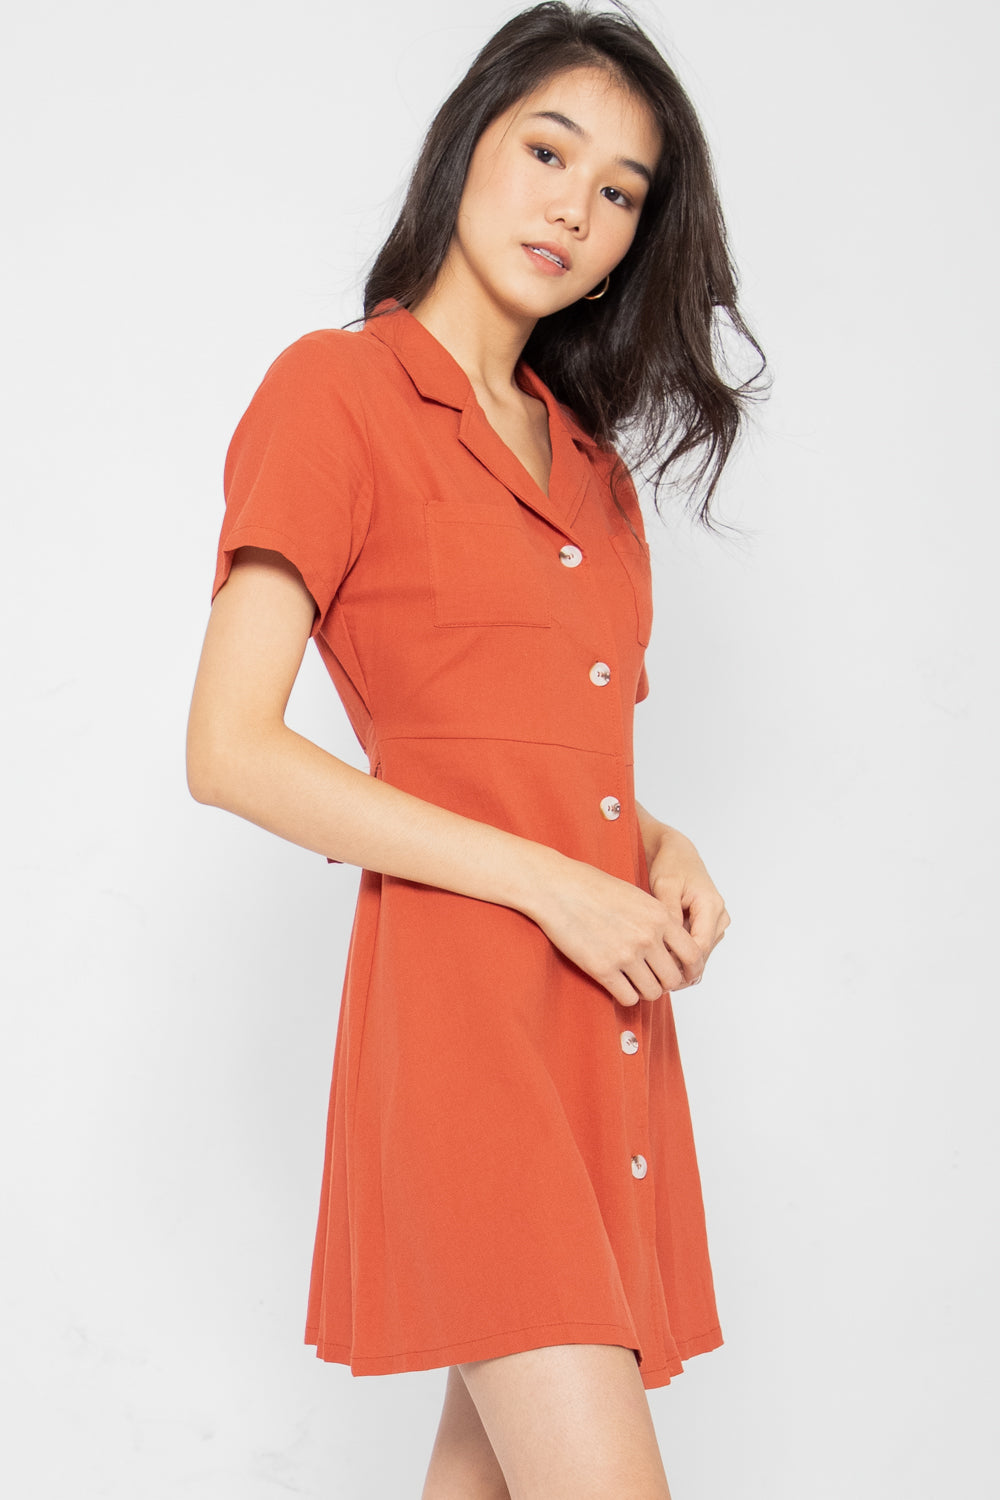 Maisie Button Down Collared Dress in Rust - Three One Duo